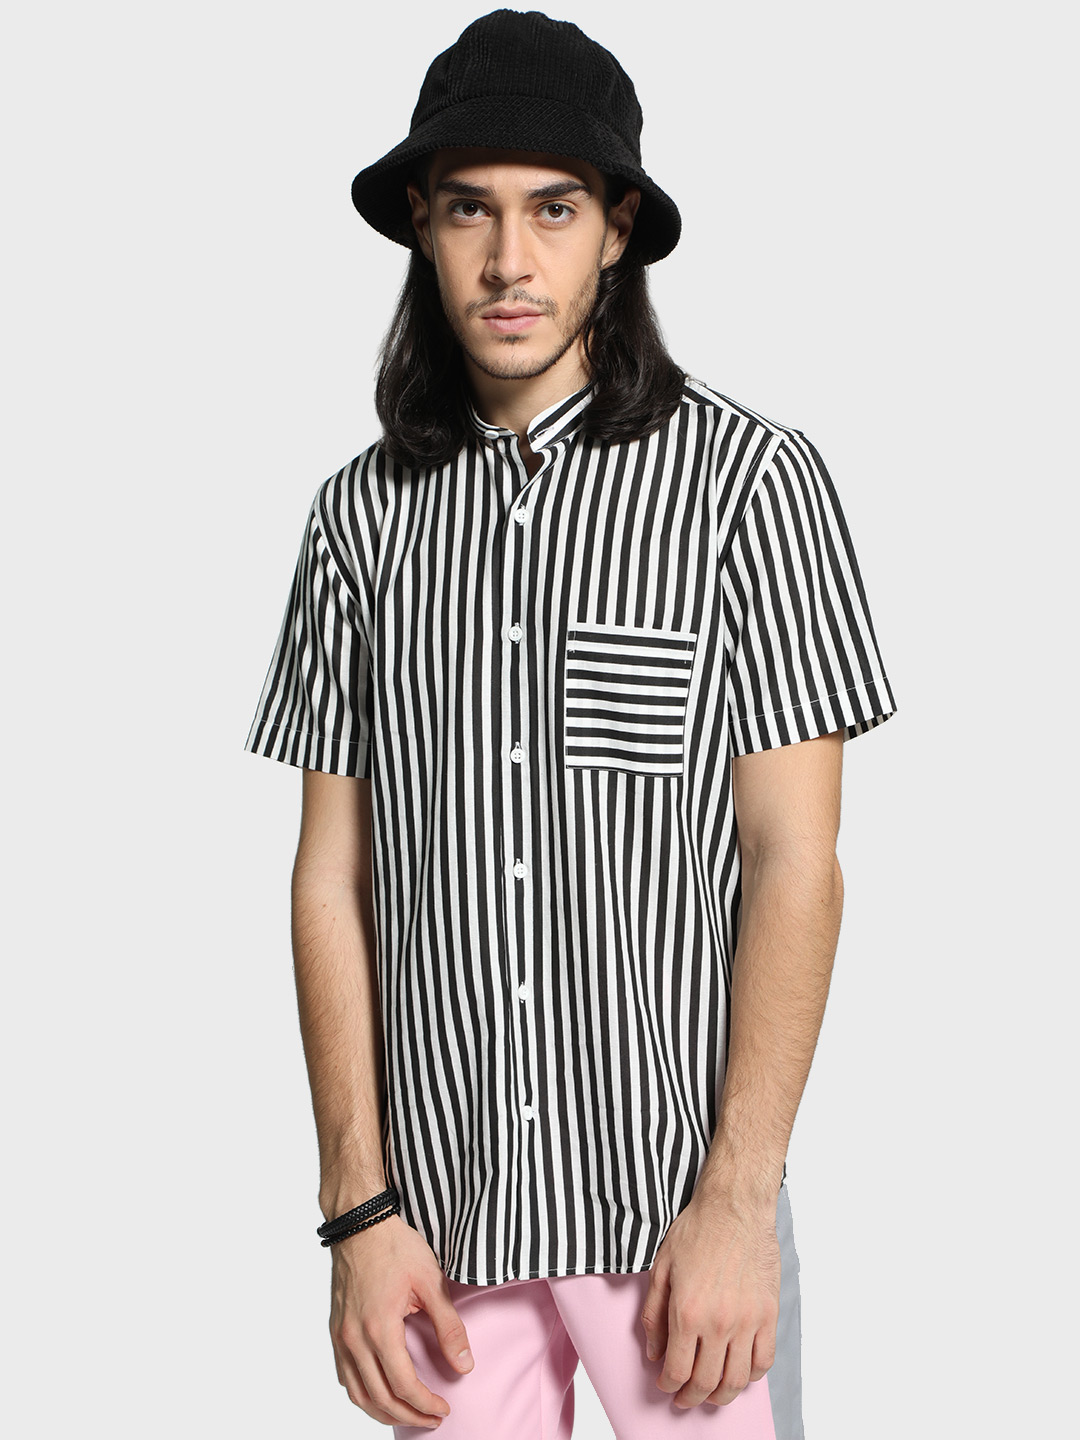 Mr Button Multi Monochrome Stripe Band Collar Shirt 1